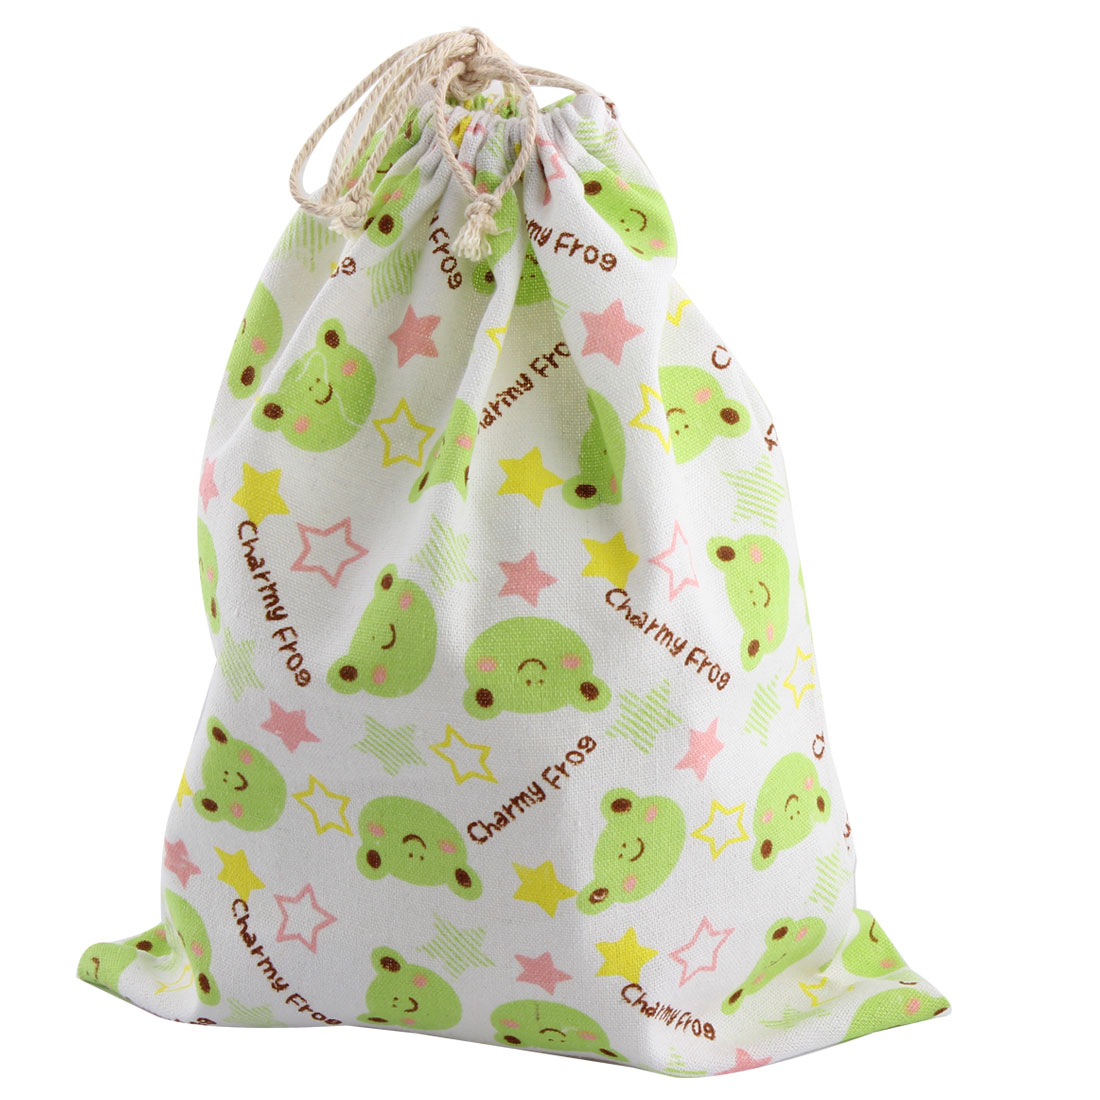 Household Linen Bag Frog Pattern Clothes Socks Storage Drawstring Pouch